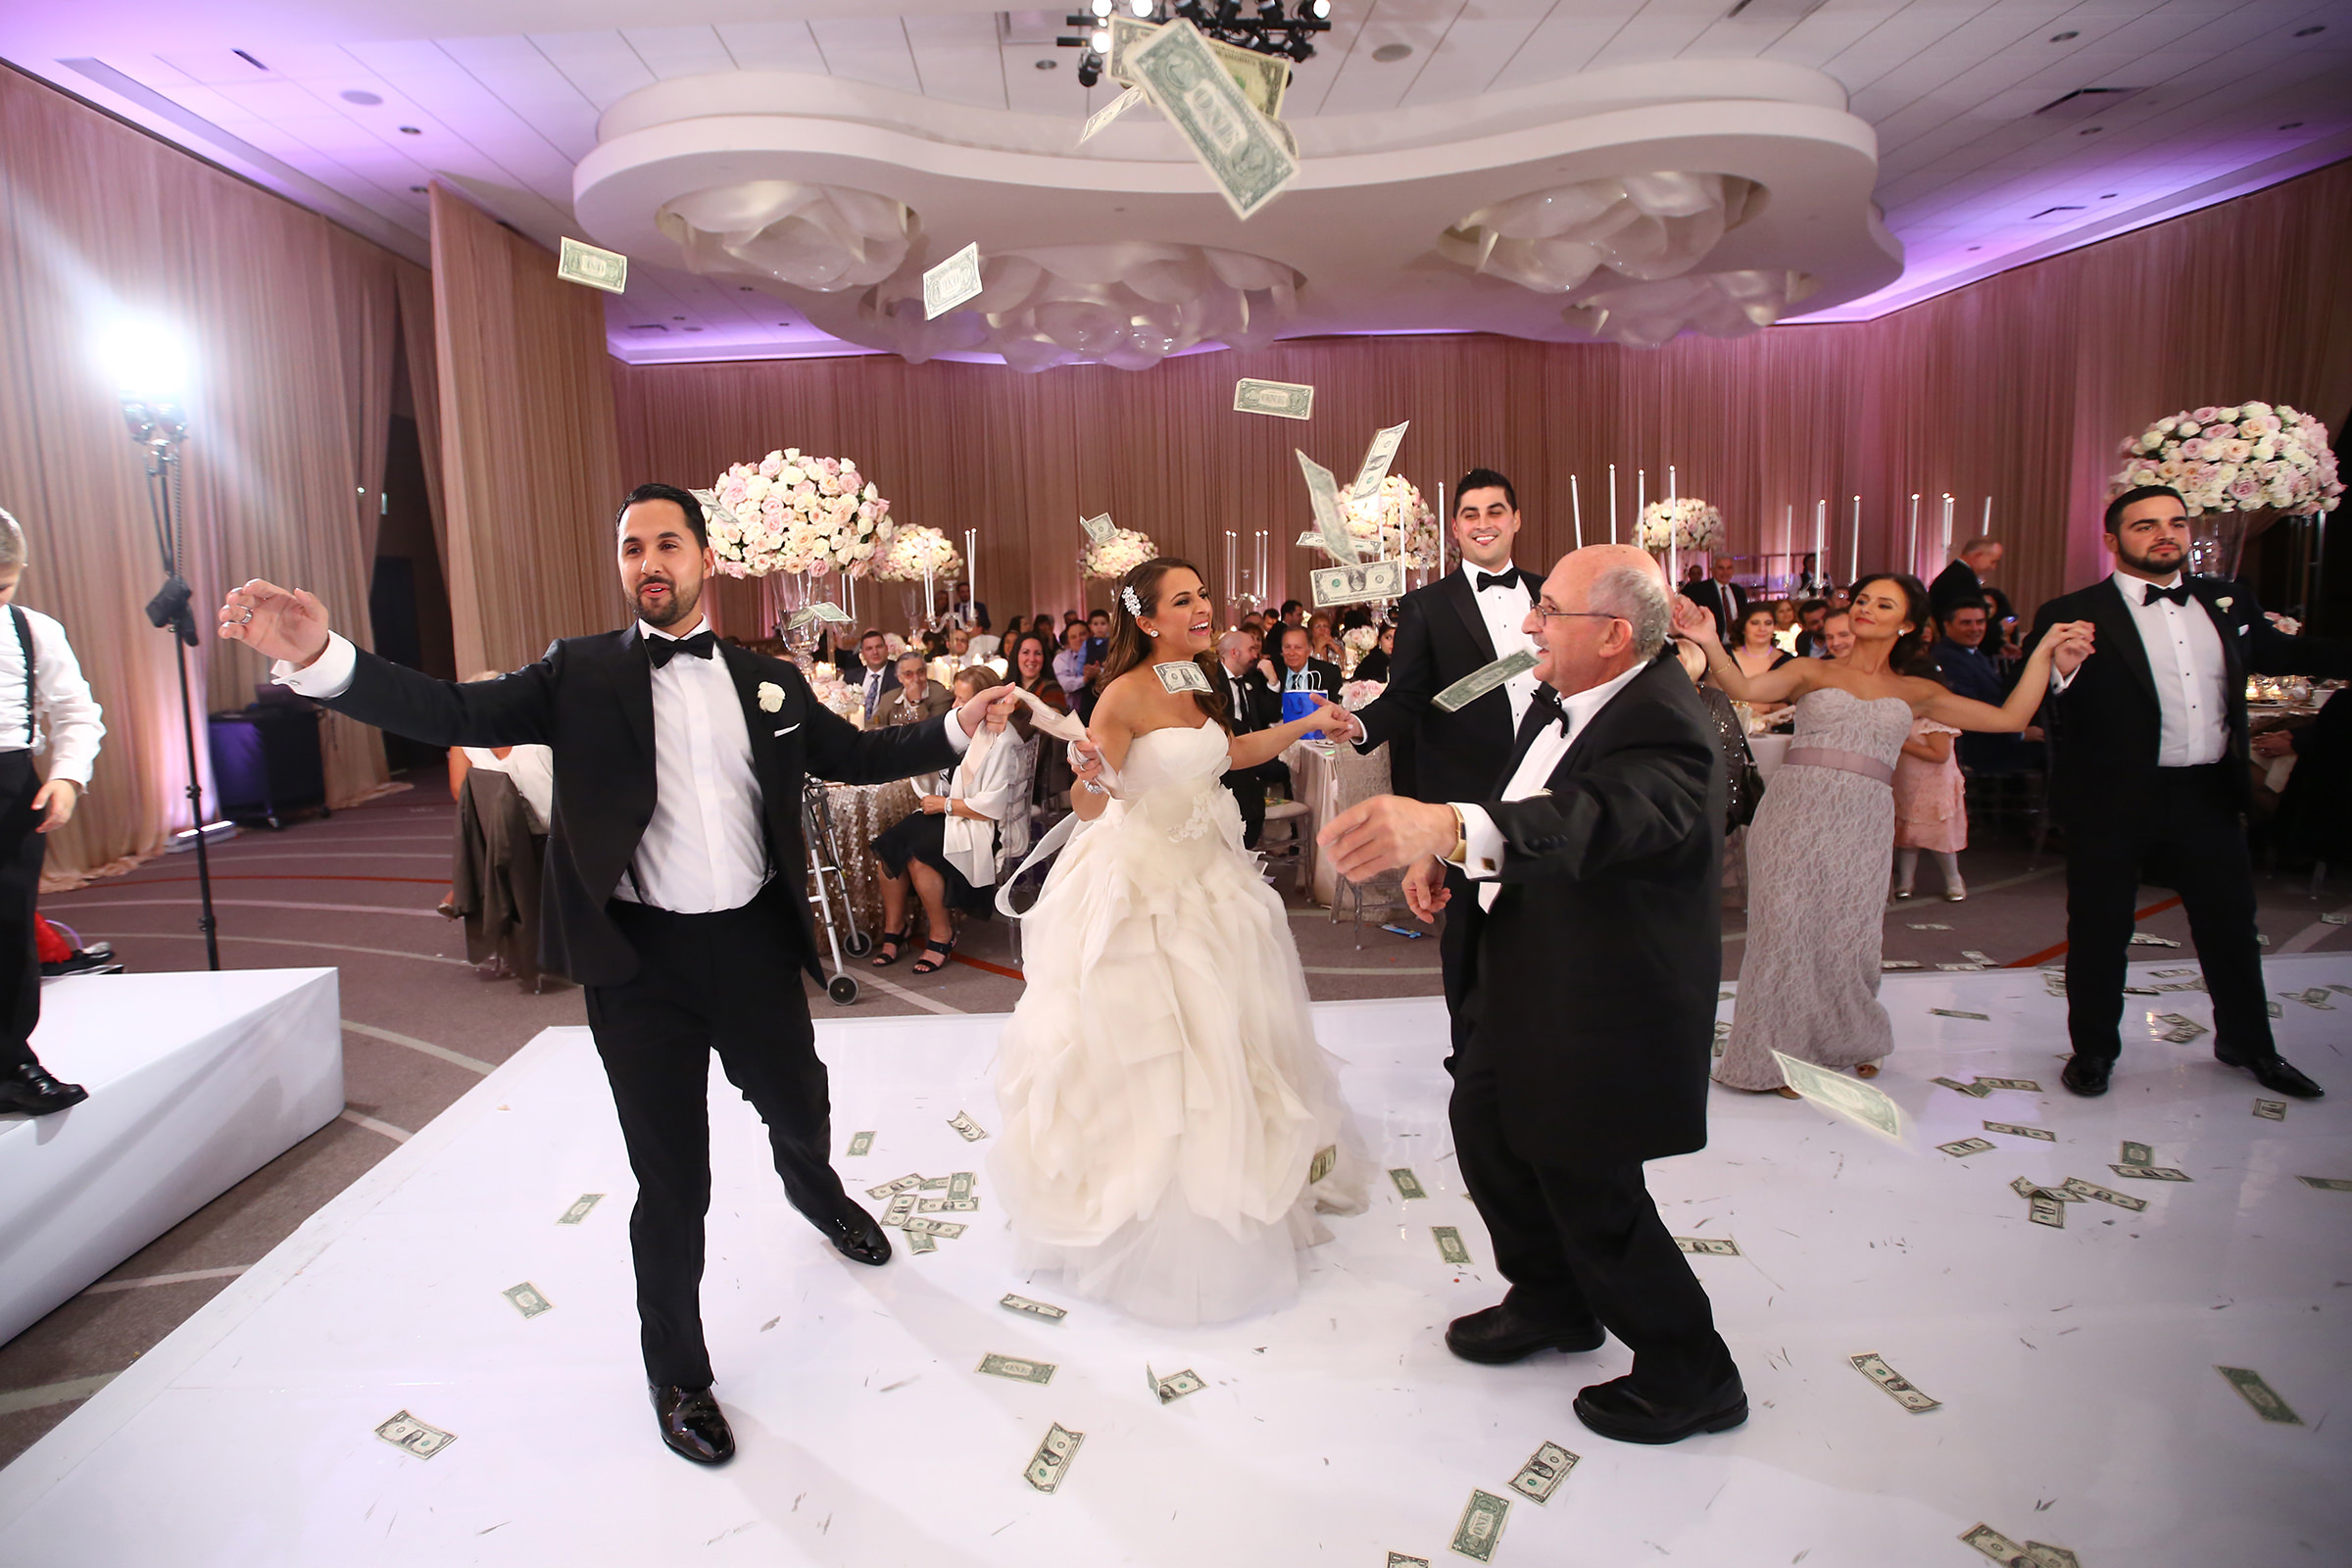 Money dance couple with family - photo by Kenny Kim Photography